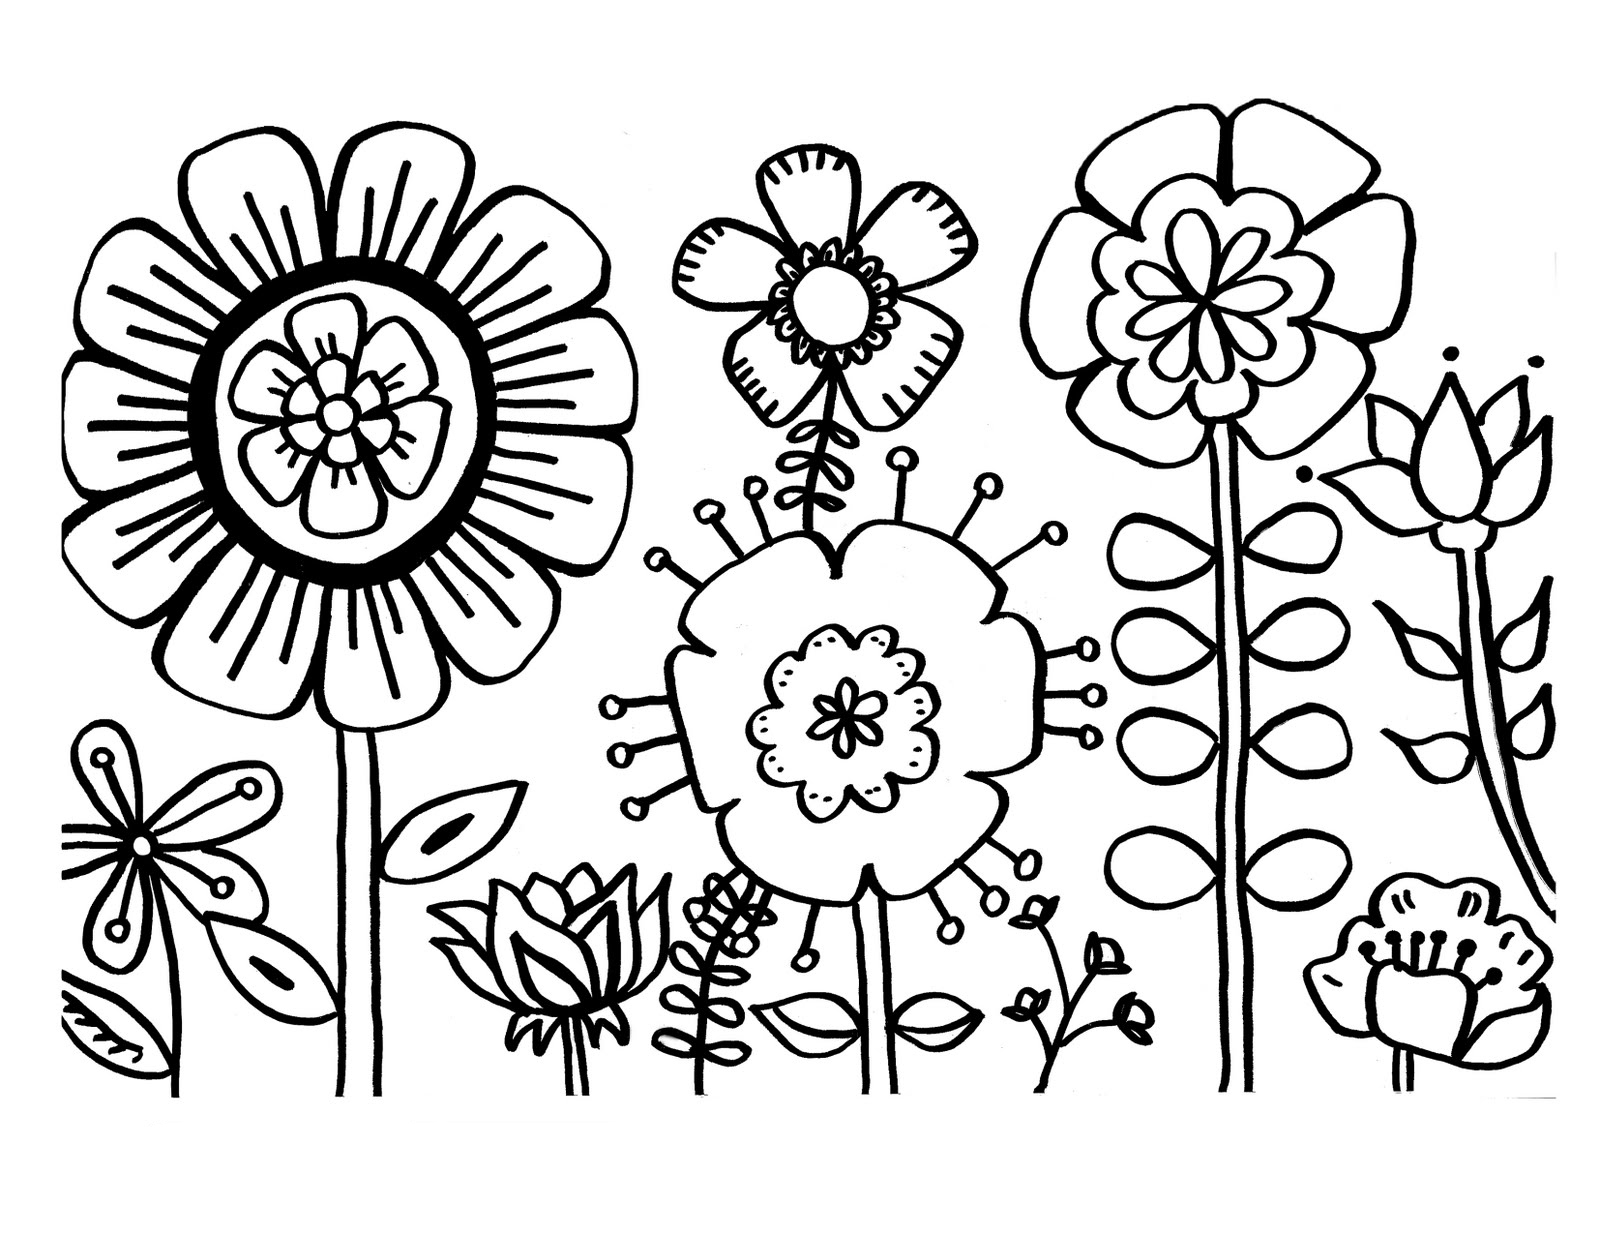 blossoms coloring pages - photo#41